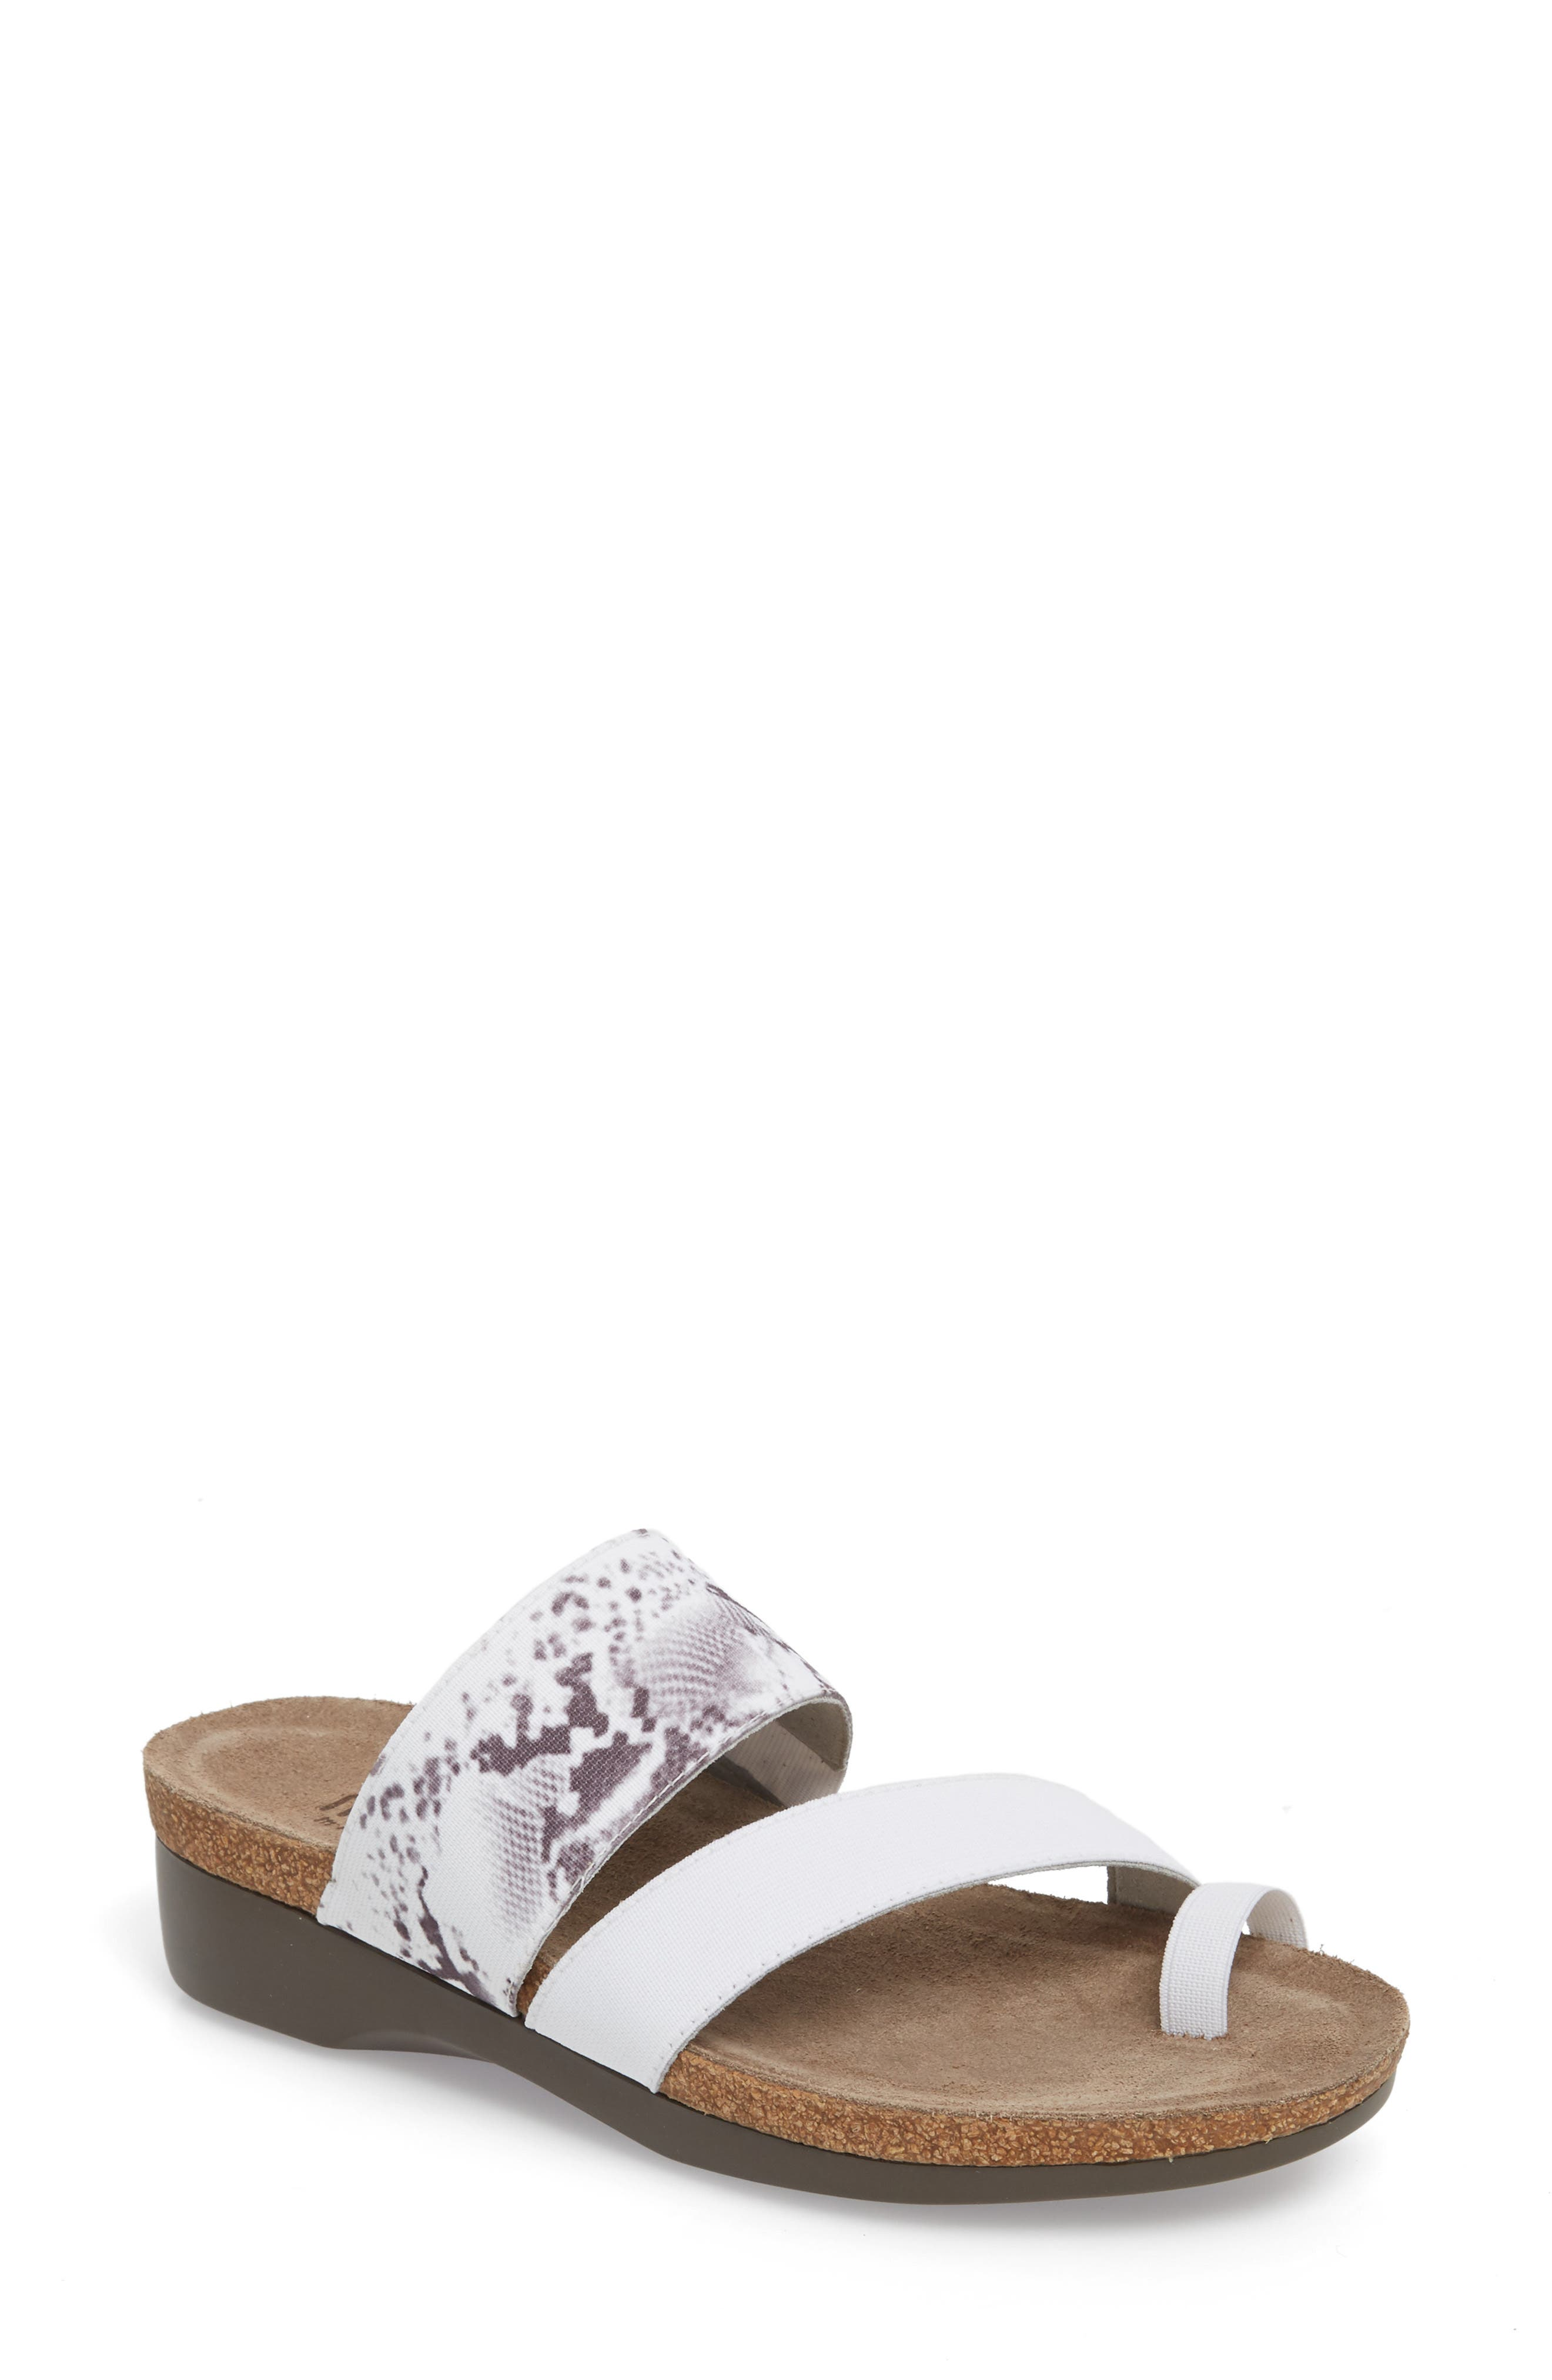 'Aries' Sandal,                             Main thumbnail 1, color,                             White Snake Leather